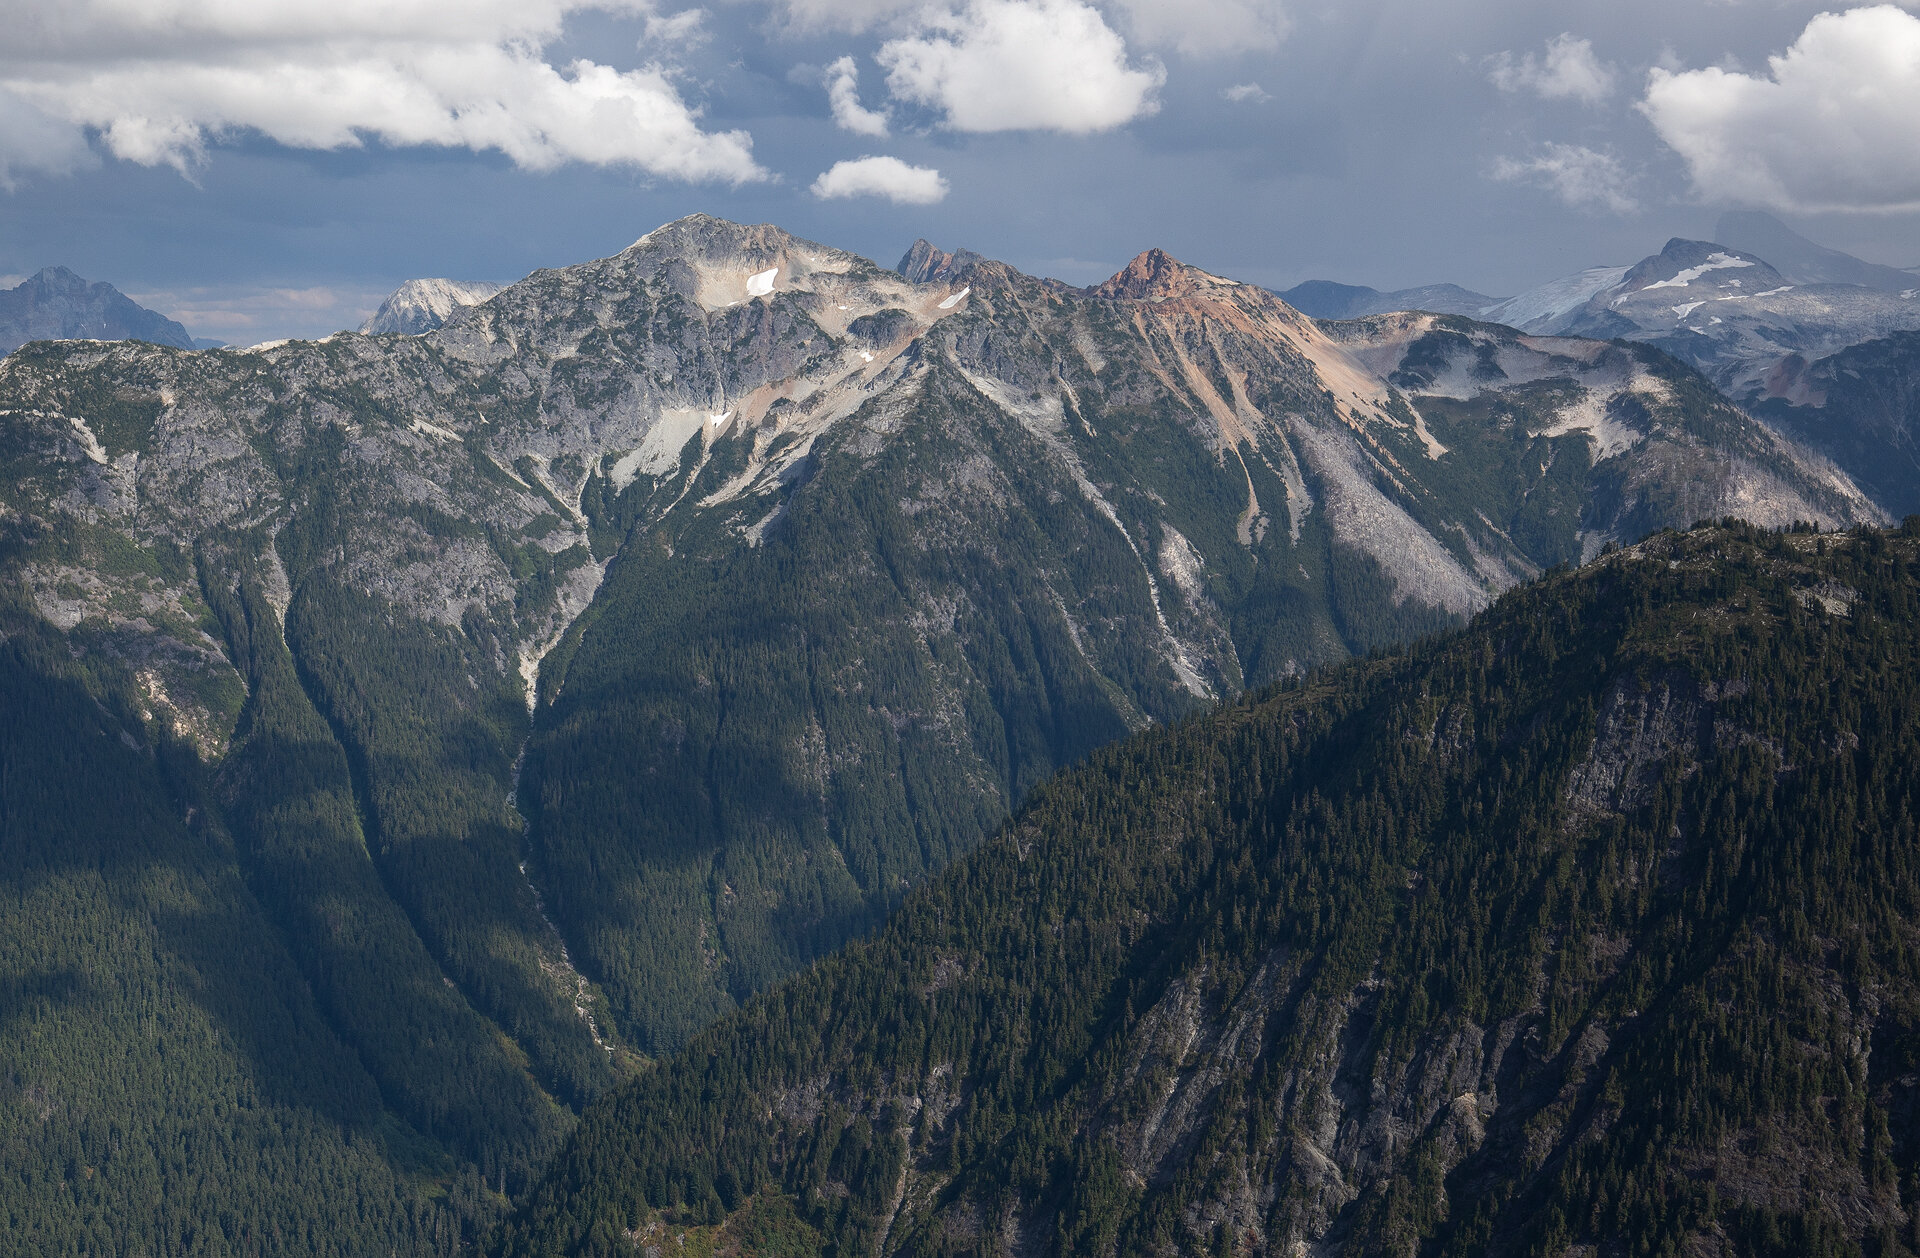 Photos from the ascent to the Copper Mountain Lookout